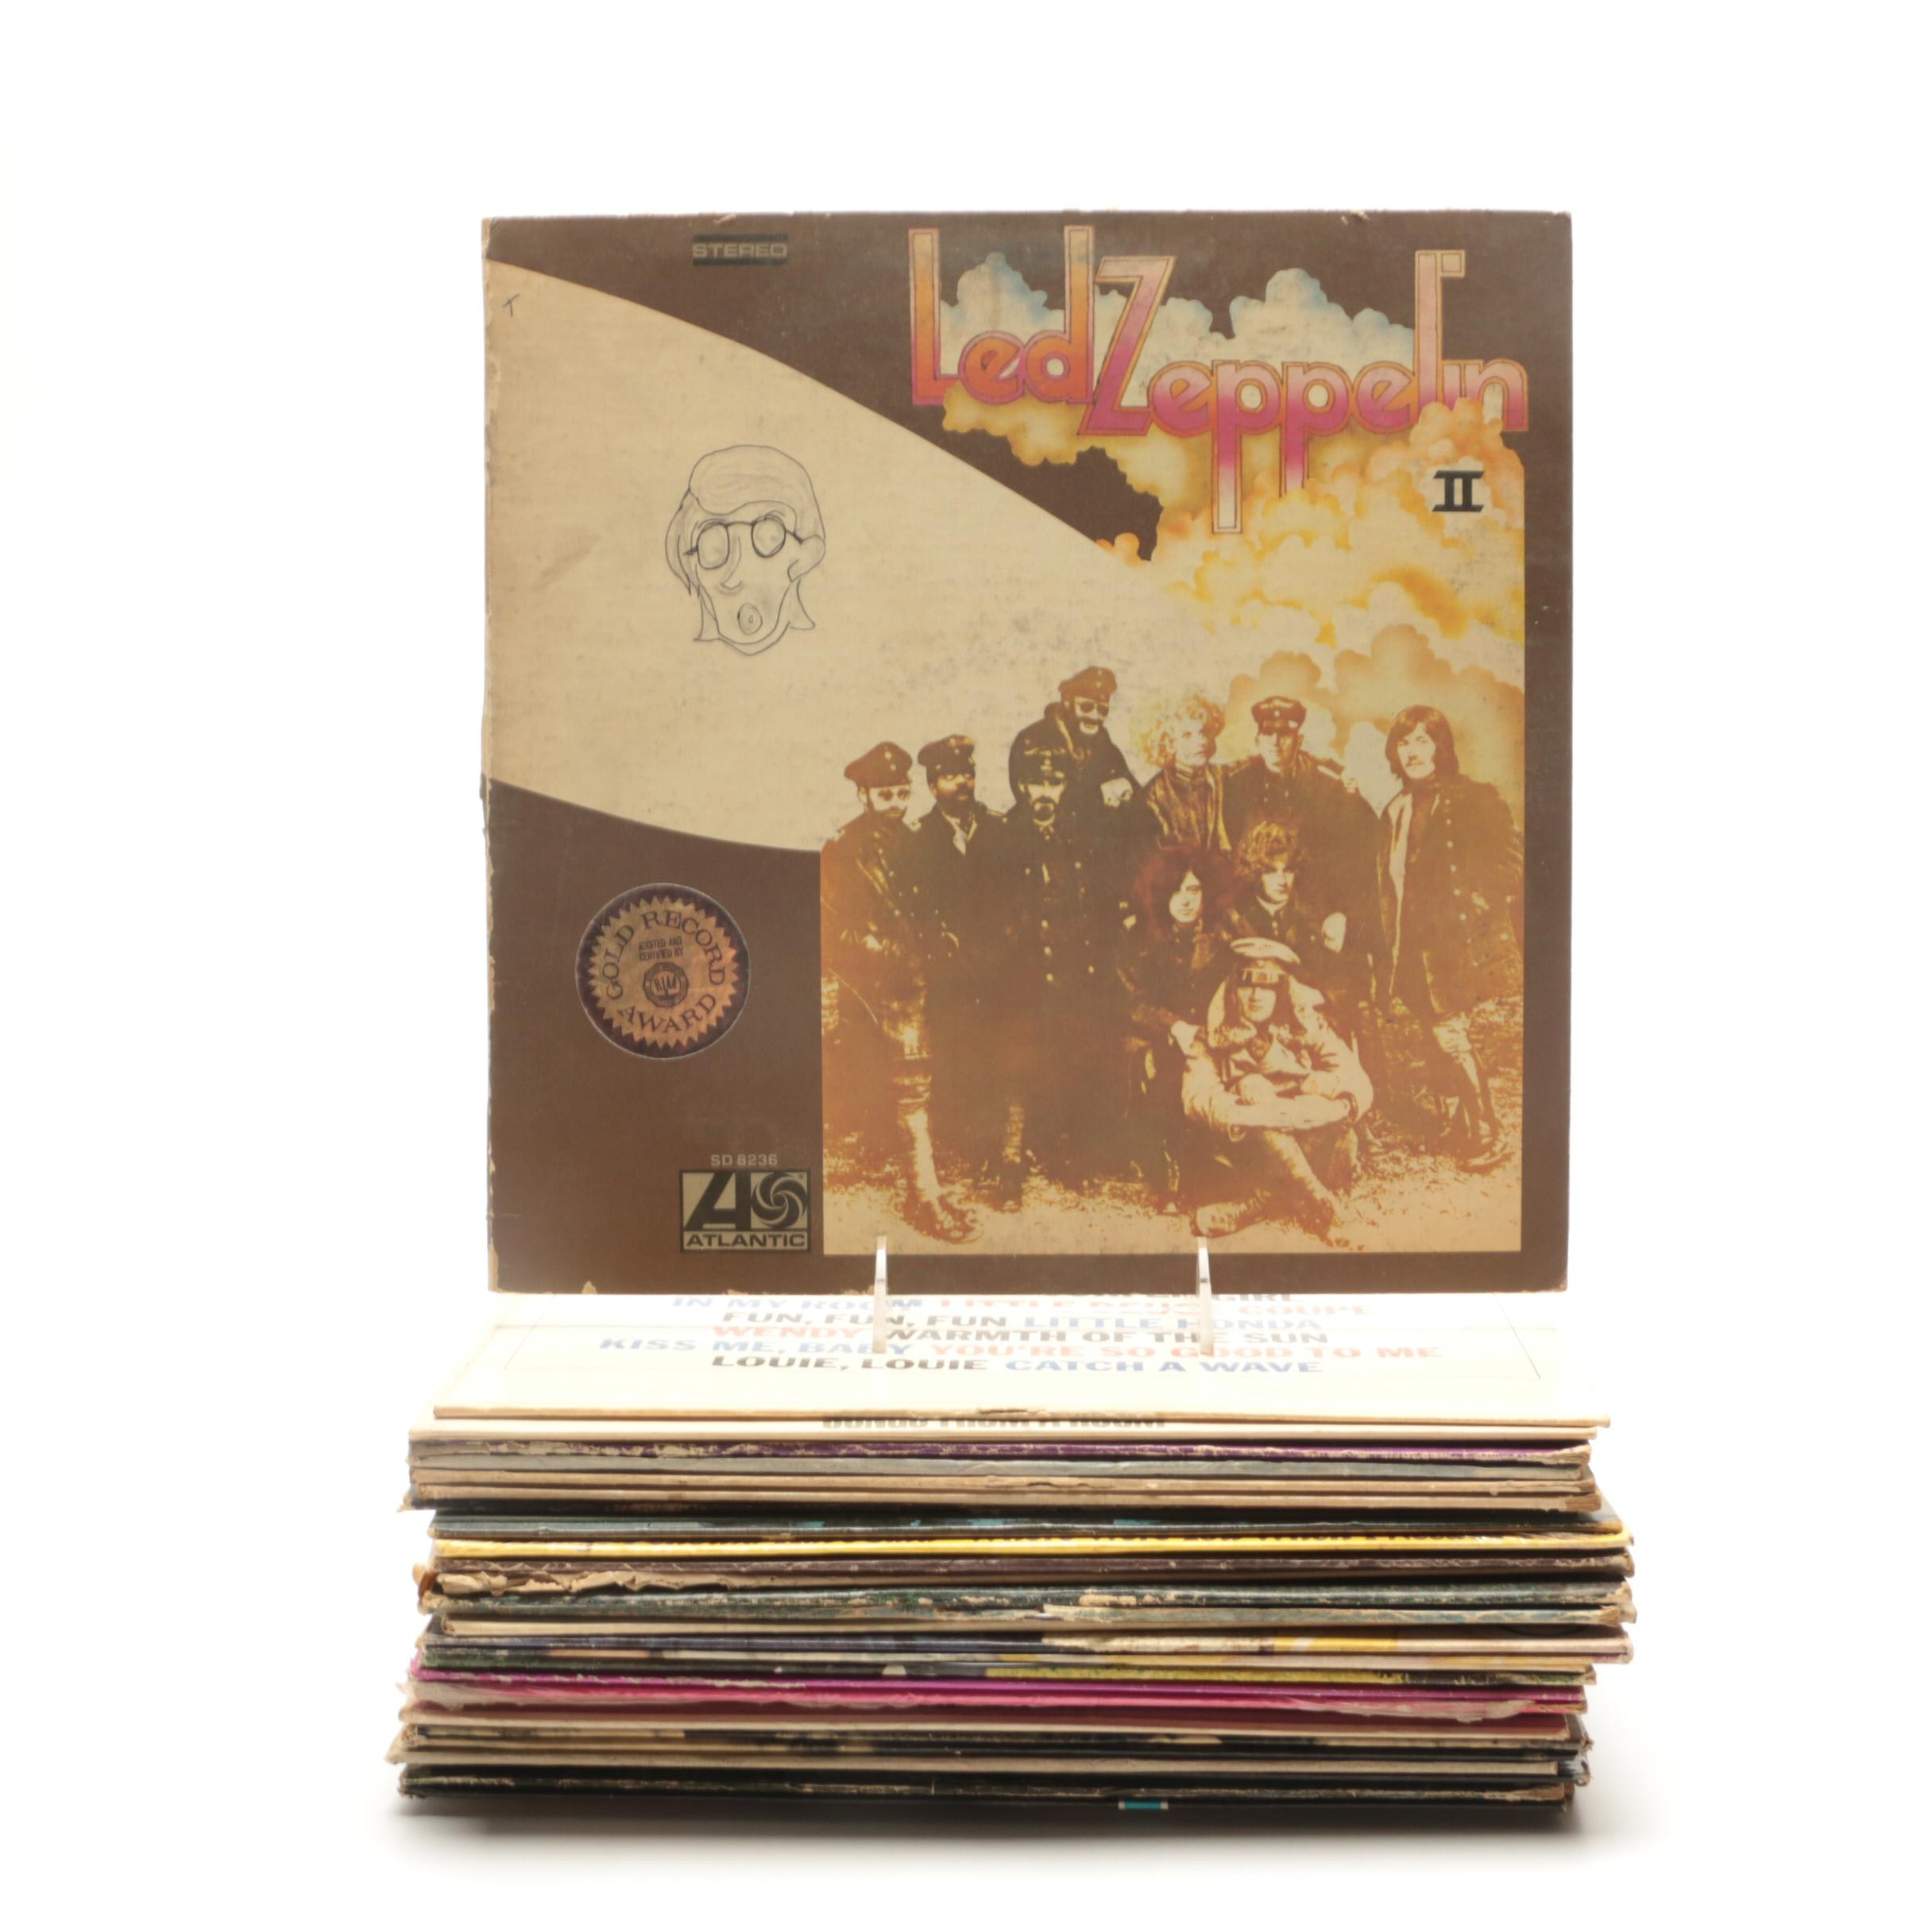 Assortment of LP Records Including Led Zeppelin, Jefferson Airplane and More